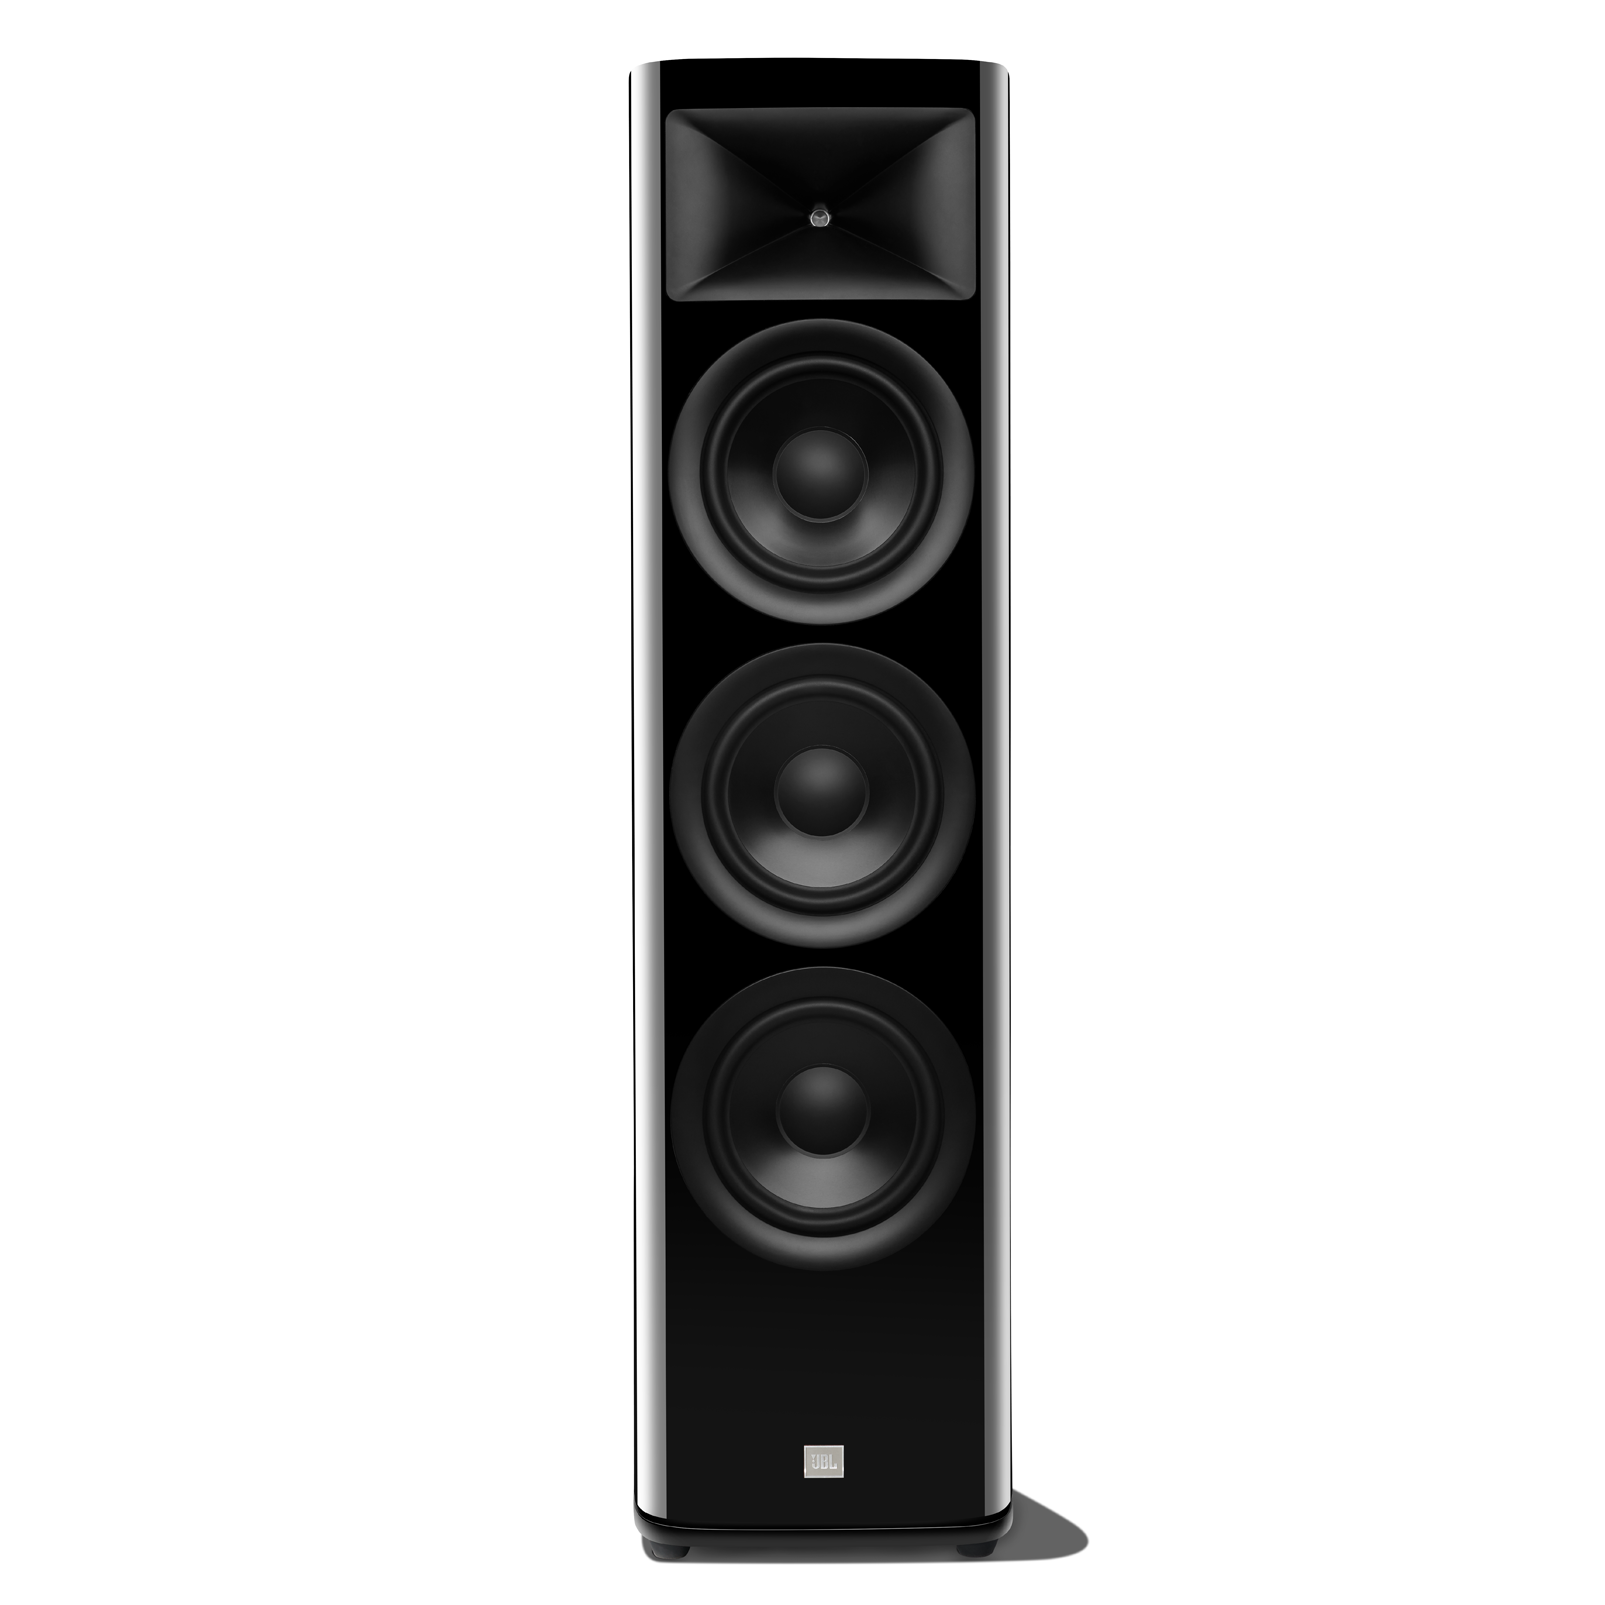 HDI-3800 - Black Gloss - 2 ½-way Triple 8-inch (200mm) Floorstanding Loudspeaker - Hero